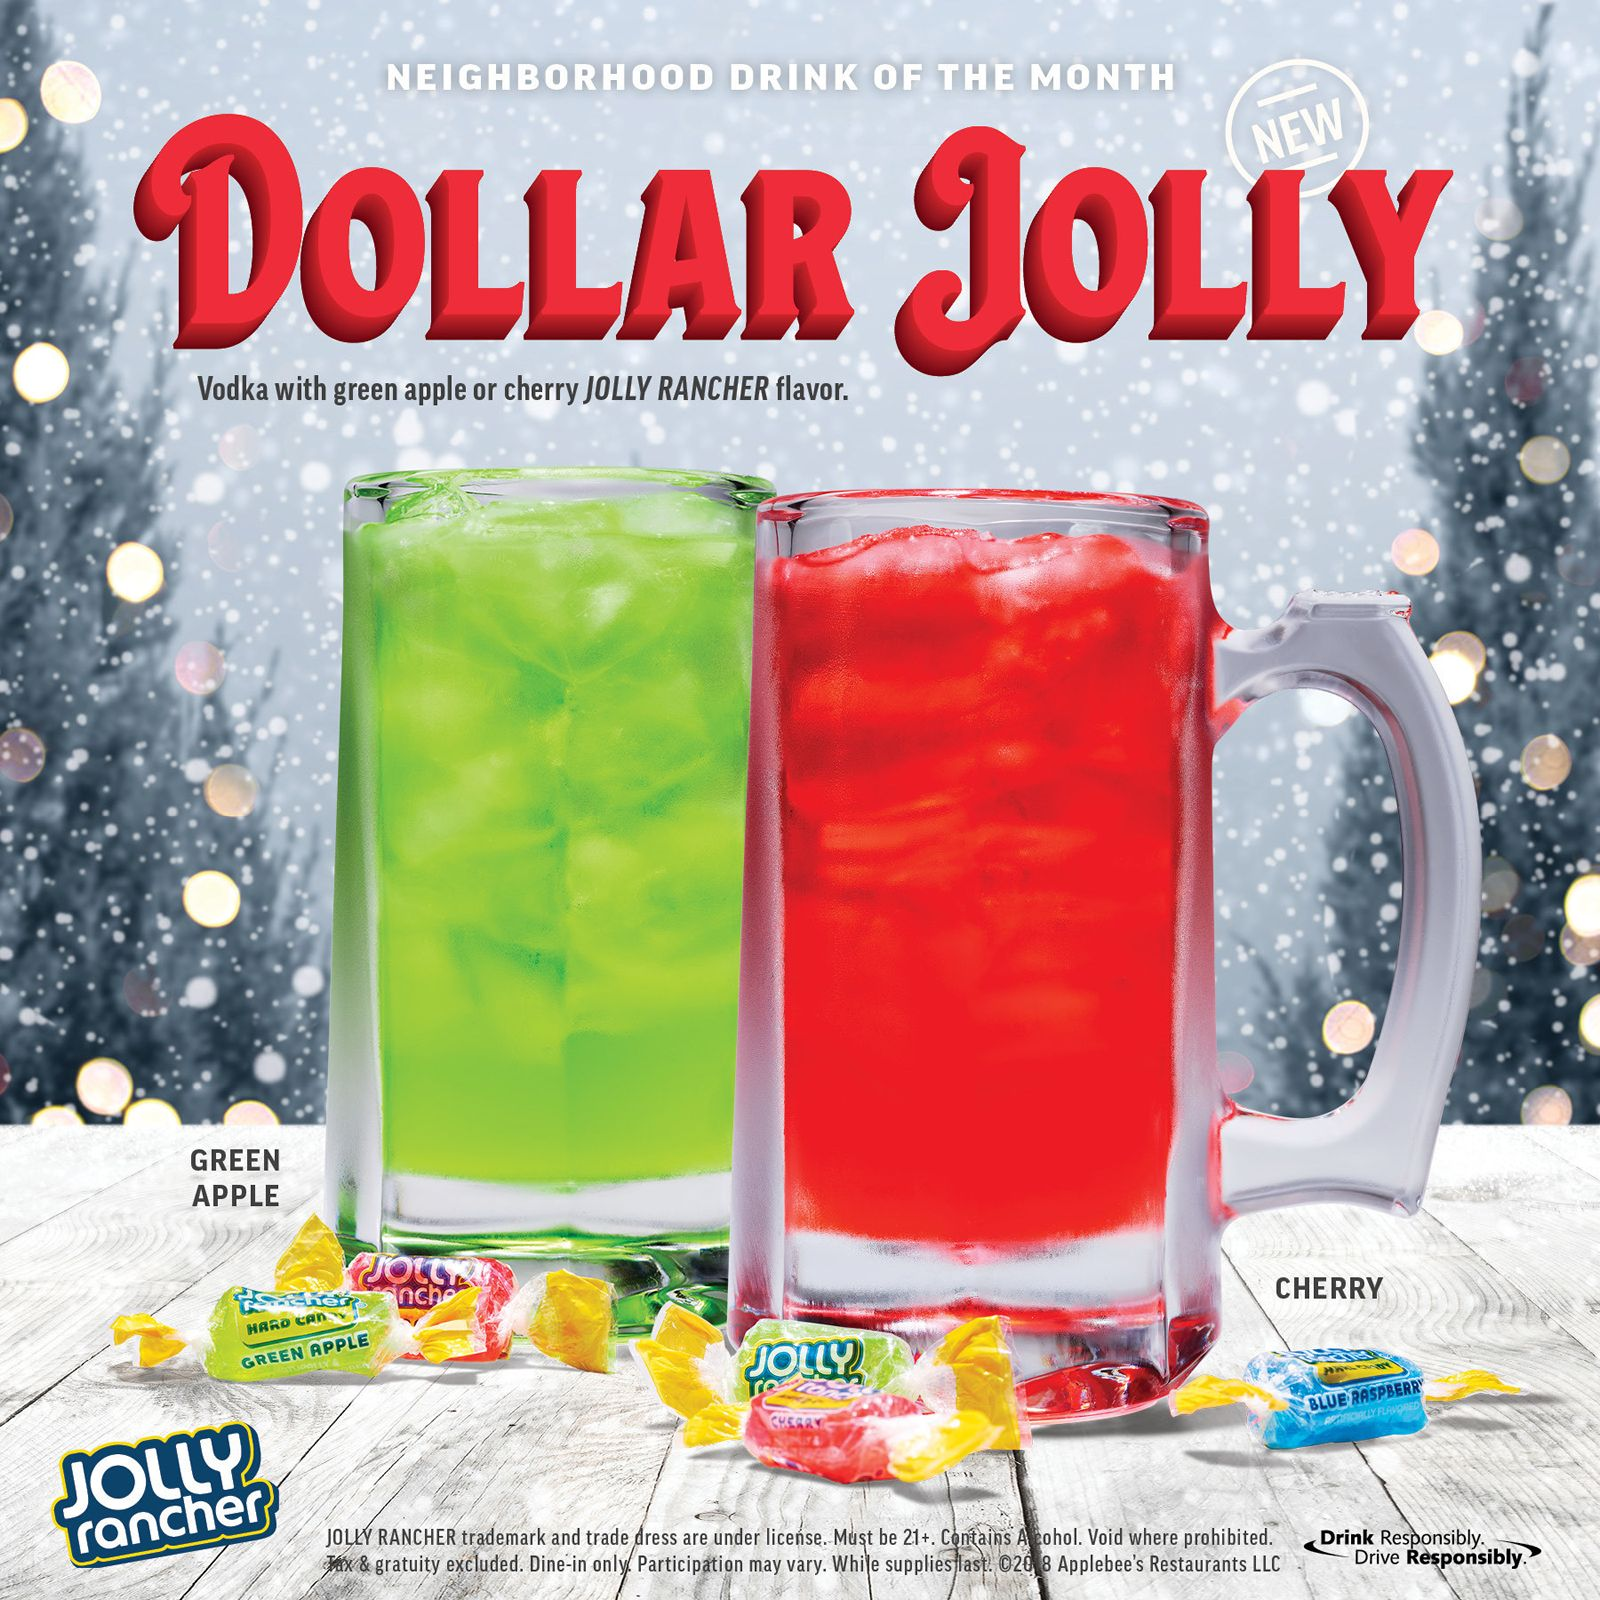 Deck the Halls with Boughs of Holly, Applebee's Announces December DOLLAR JOLLY!